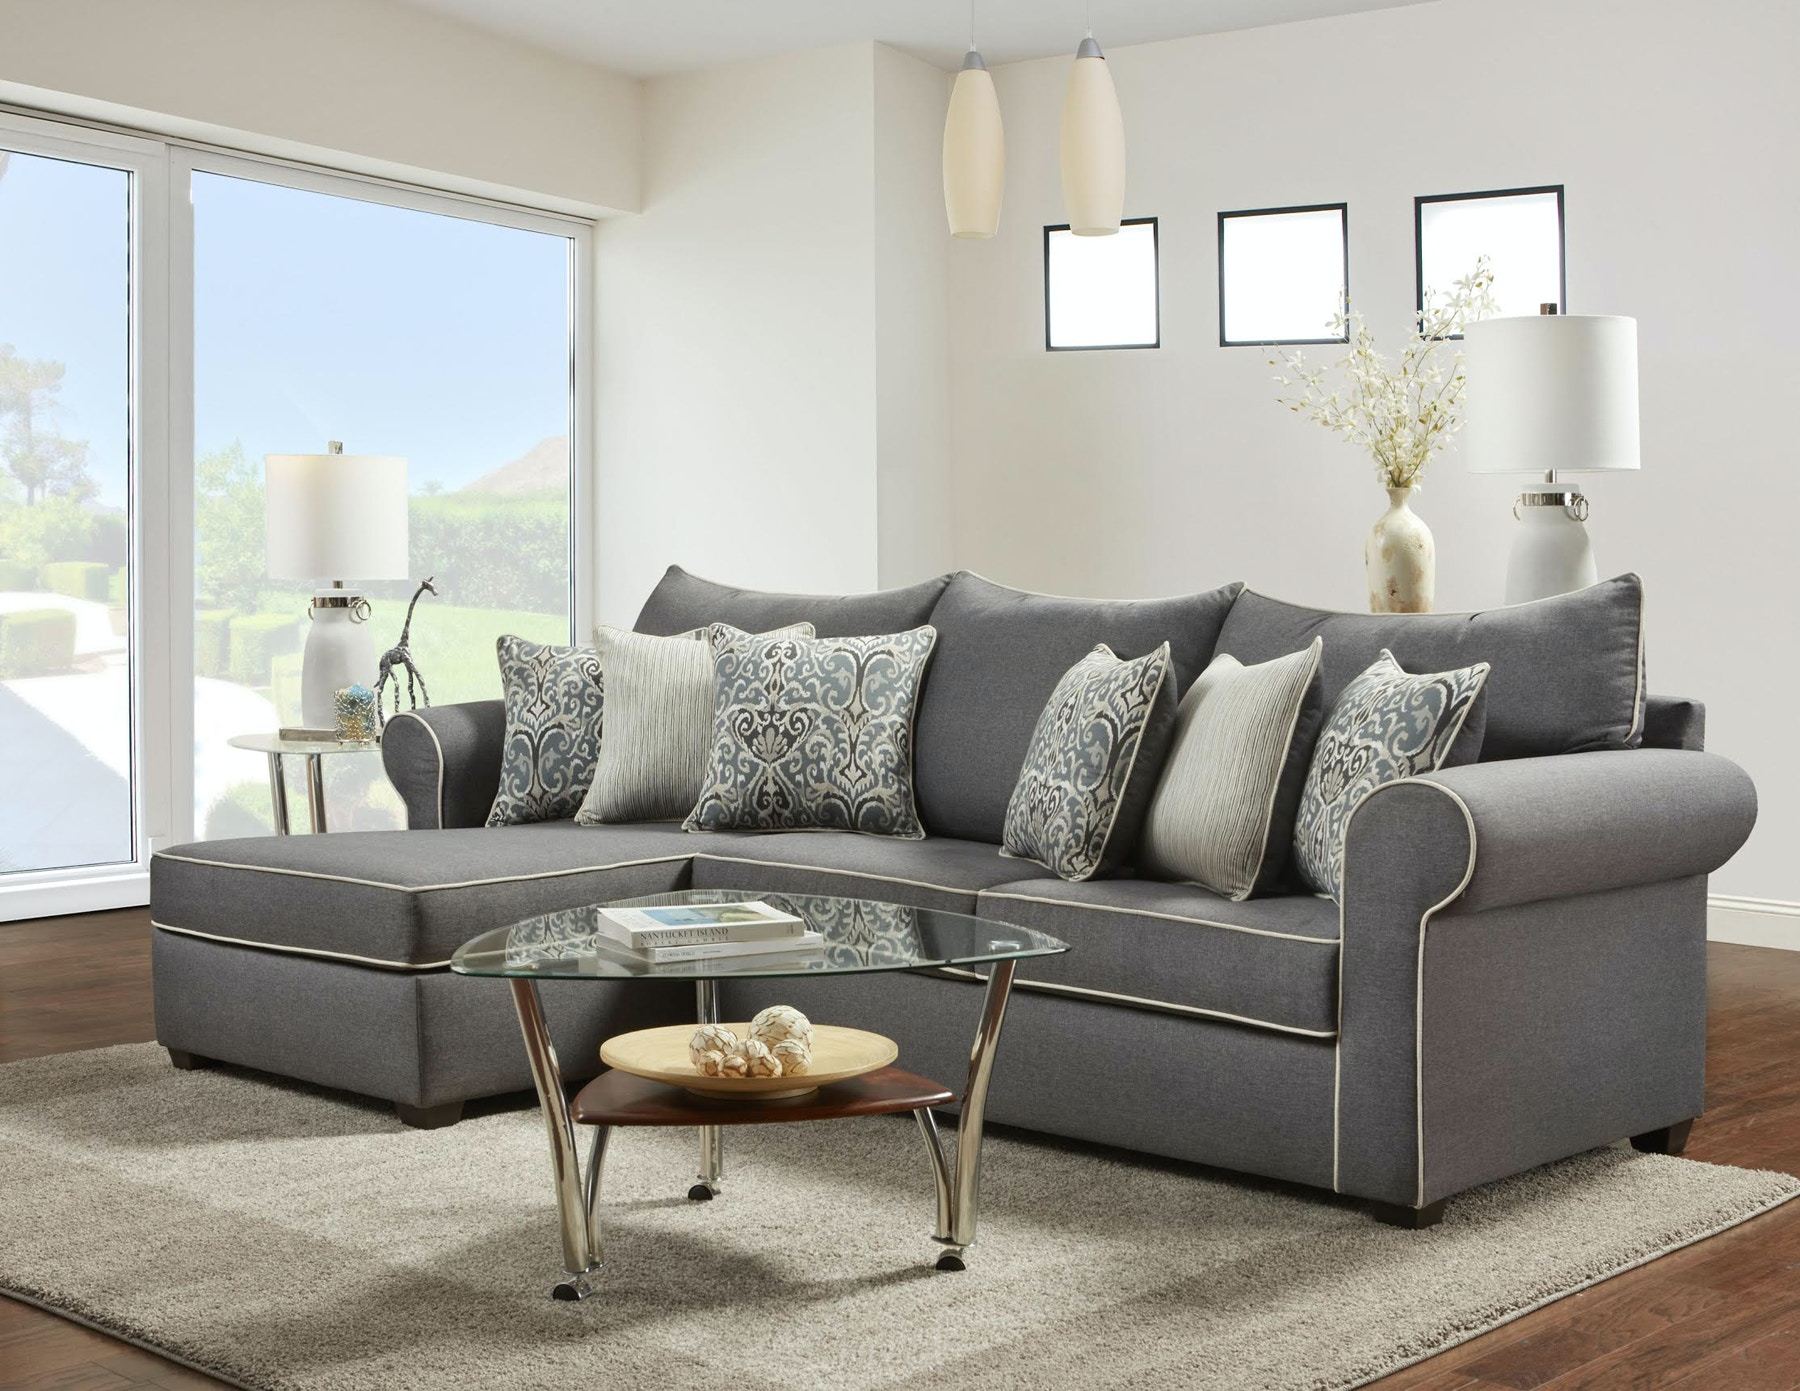 designs sectional with contemporary products scandinavian leather tailored rf cercis gy chaise right s